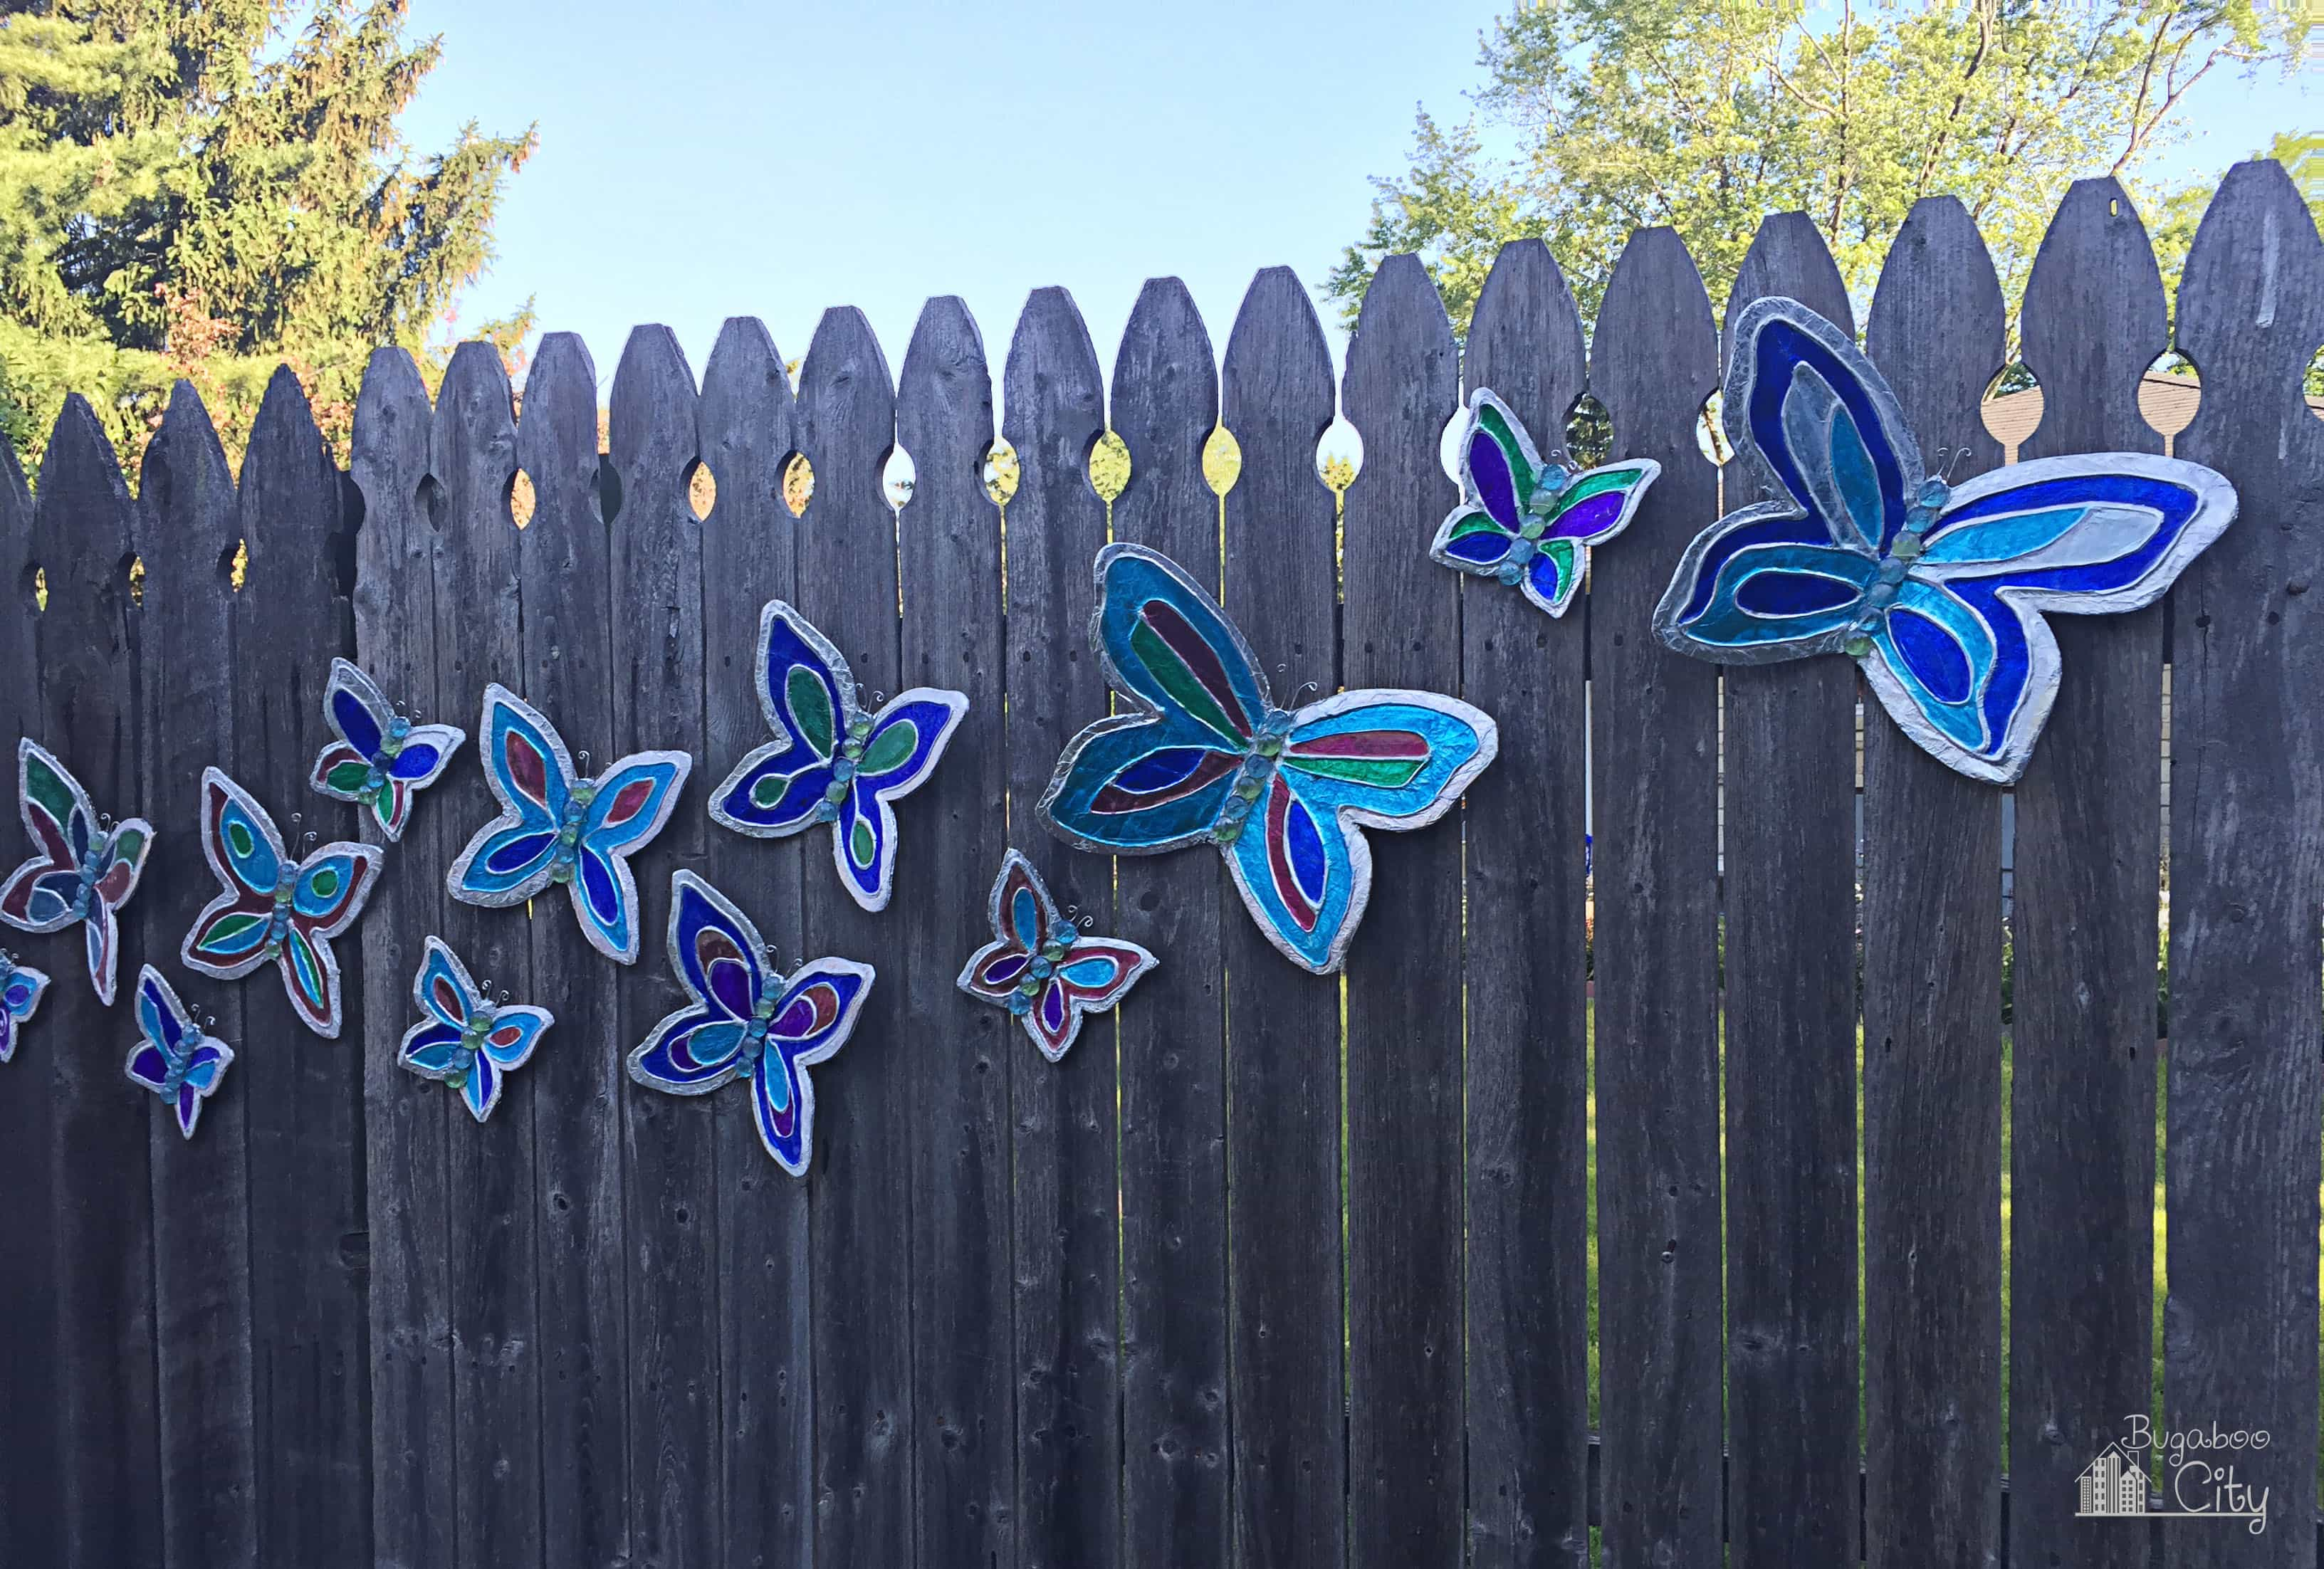 Outside ornaments - Once They Have Dried Your Butterflies Are Finished And Ready To Be Put Outside